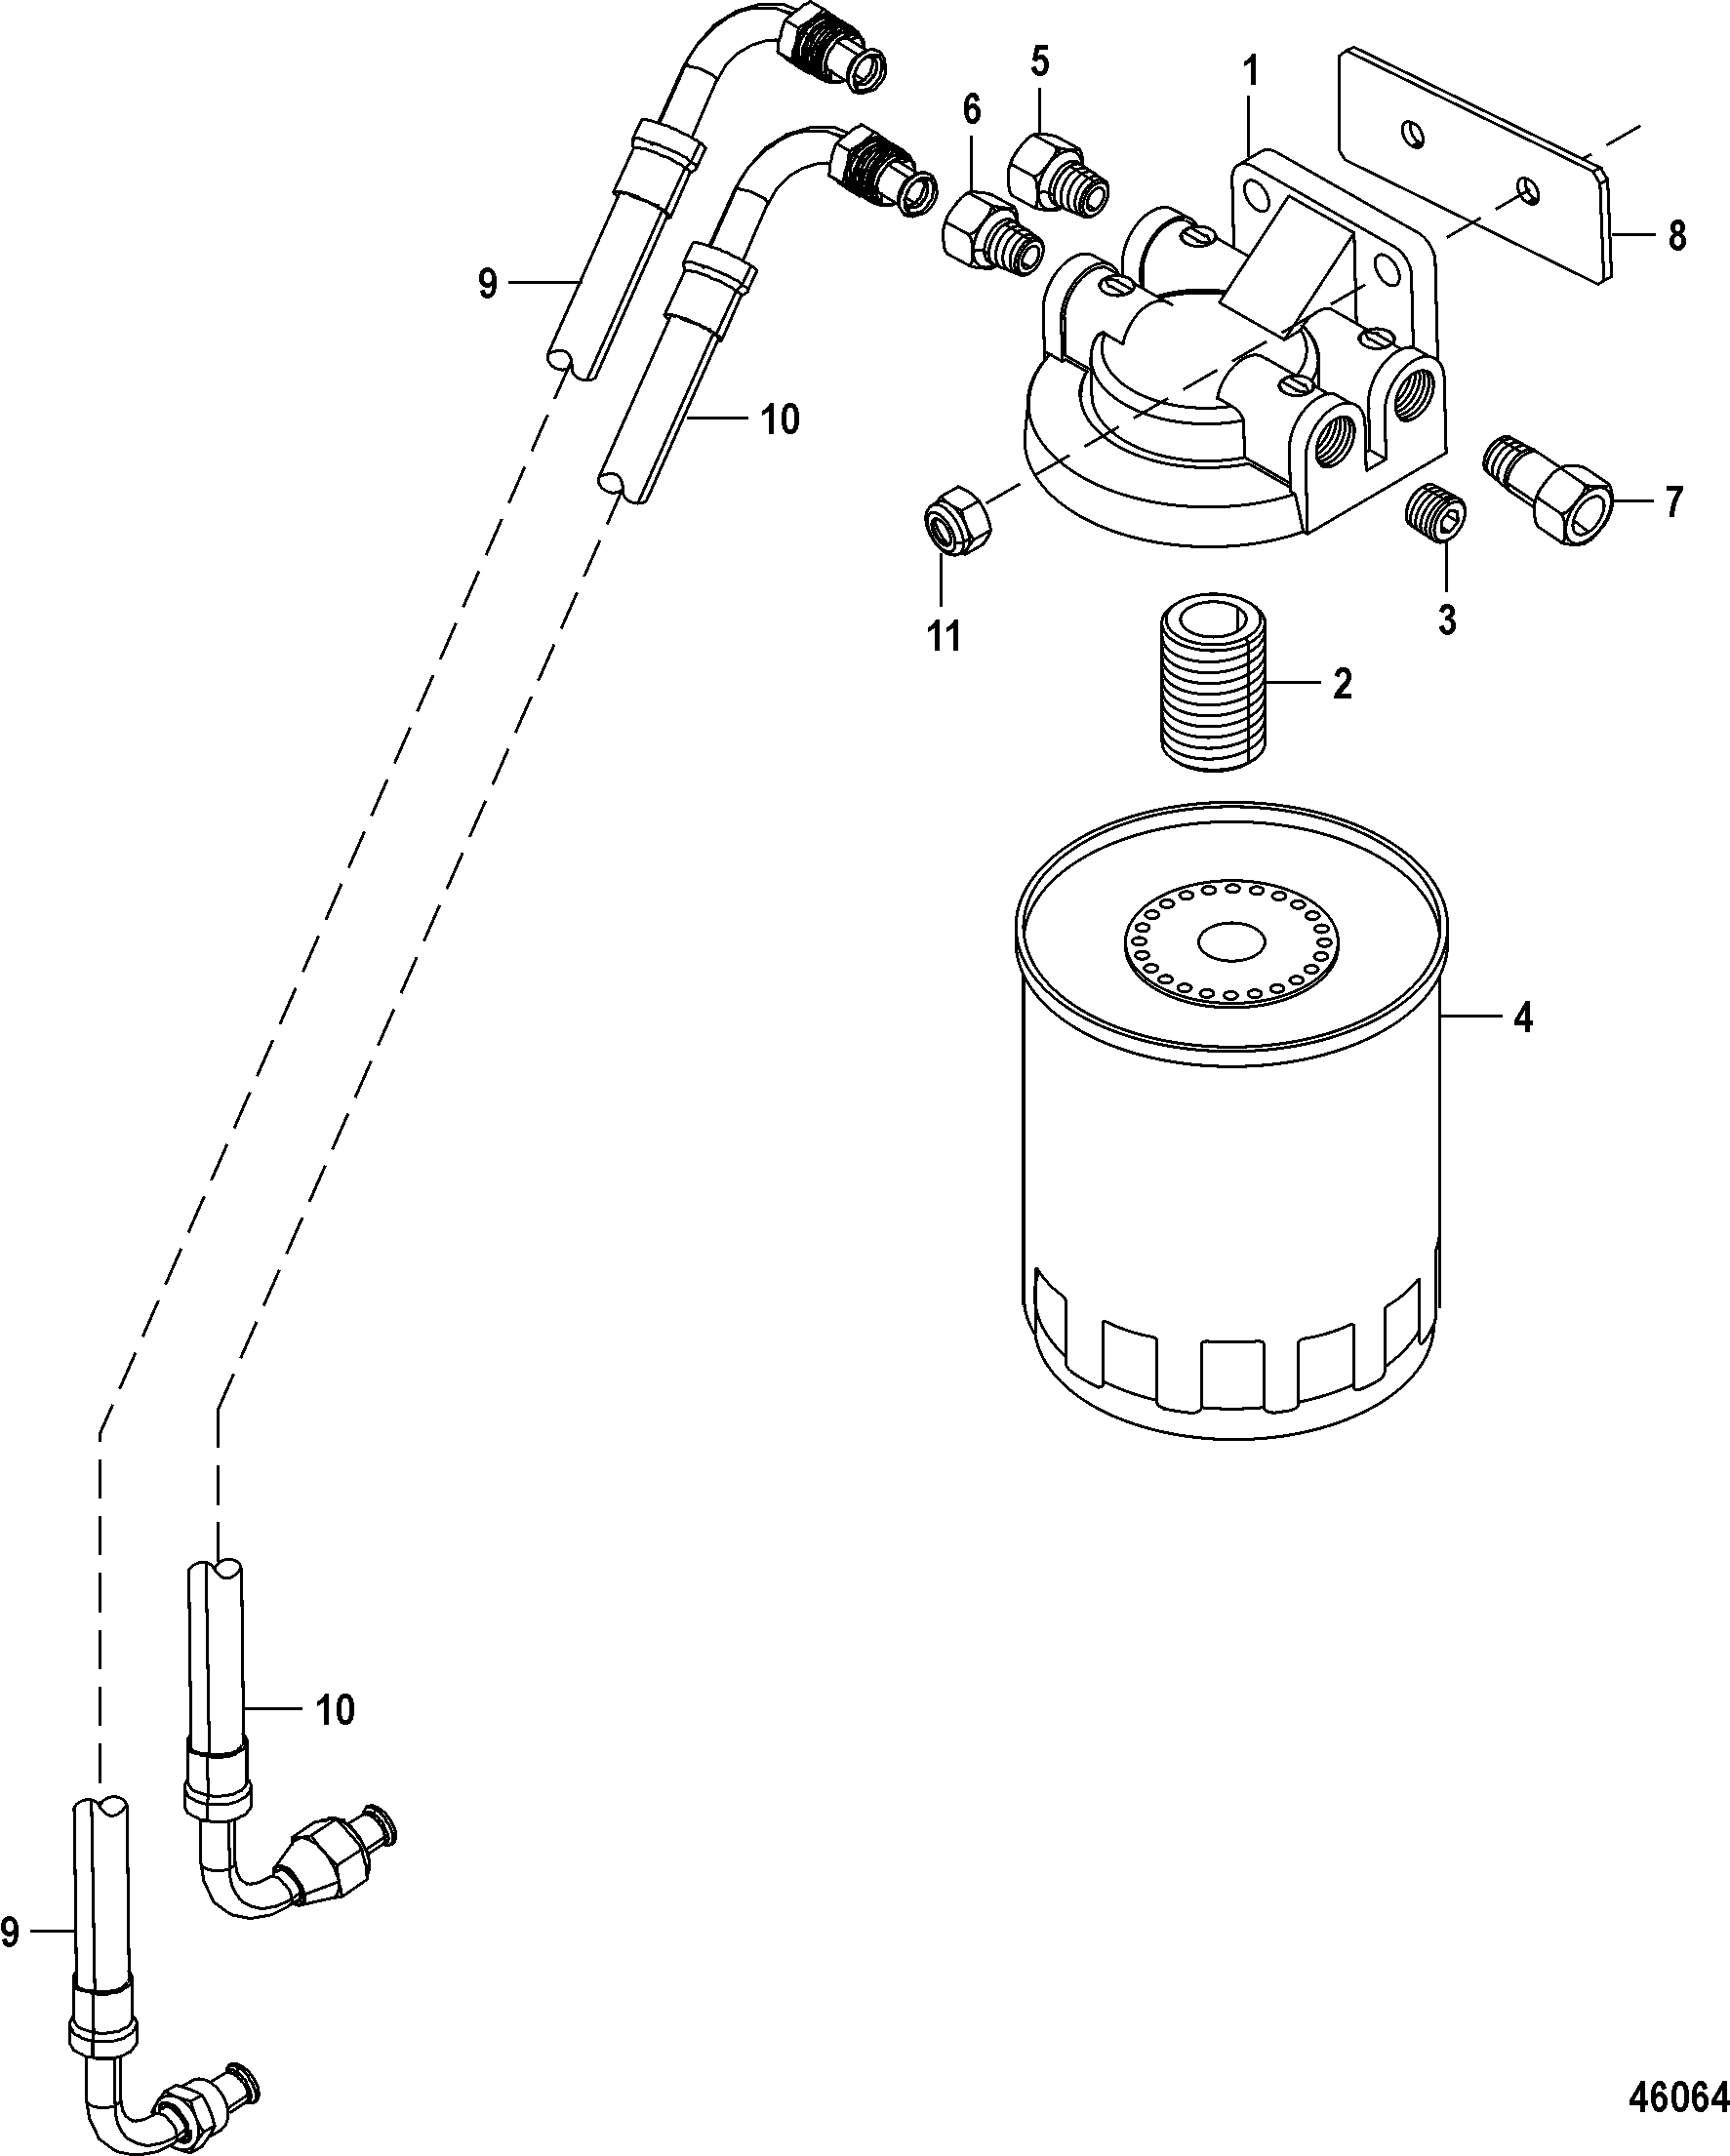 10427161 Gimbal Housing Install in addition 4 Hp Evinrude Outboard Diagram furthermore Universal Joint Shifter  ponents likewise Pre Alpha Mercruiser Wiring Diagram besides Mercruiser 4 3l Engine Diagram. on mercruiser alpha one manual